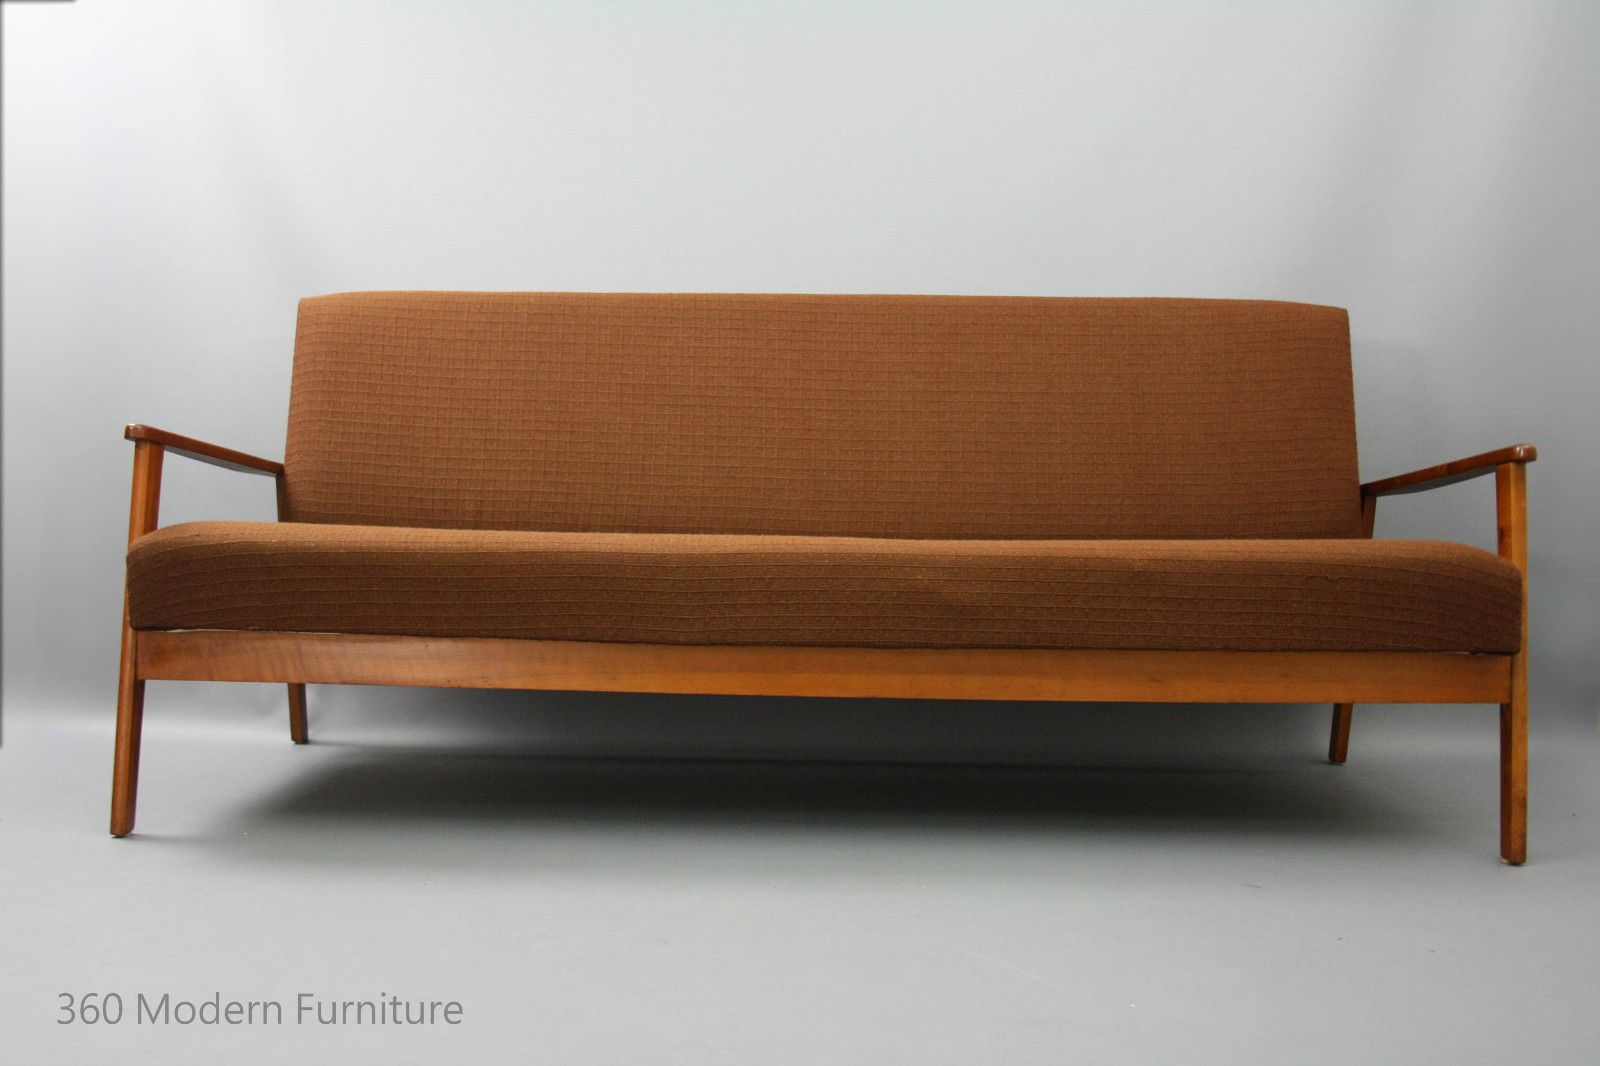 MID Century Modern Sofa BED Lounge 3 Seater Click Clack Couch Retro Vintage  Lounge Danish Era